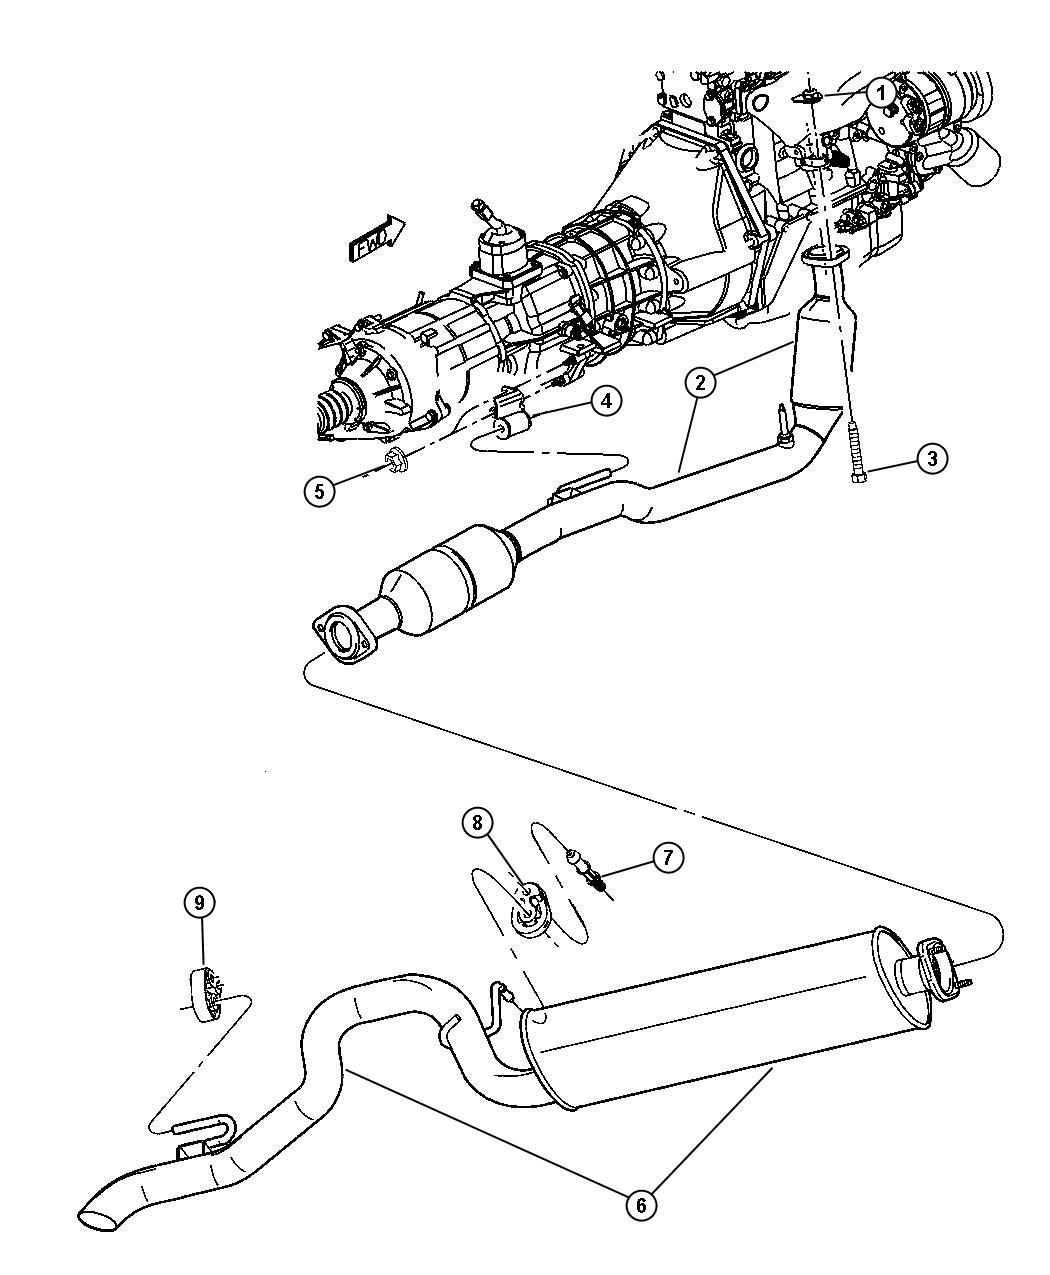 Jeep Liberty Exhaust Diagram on jeep jk engine